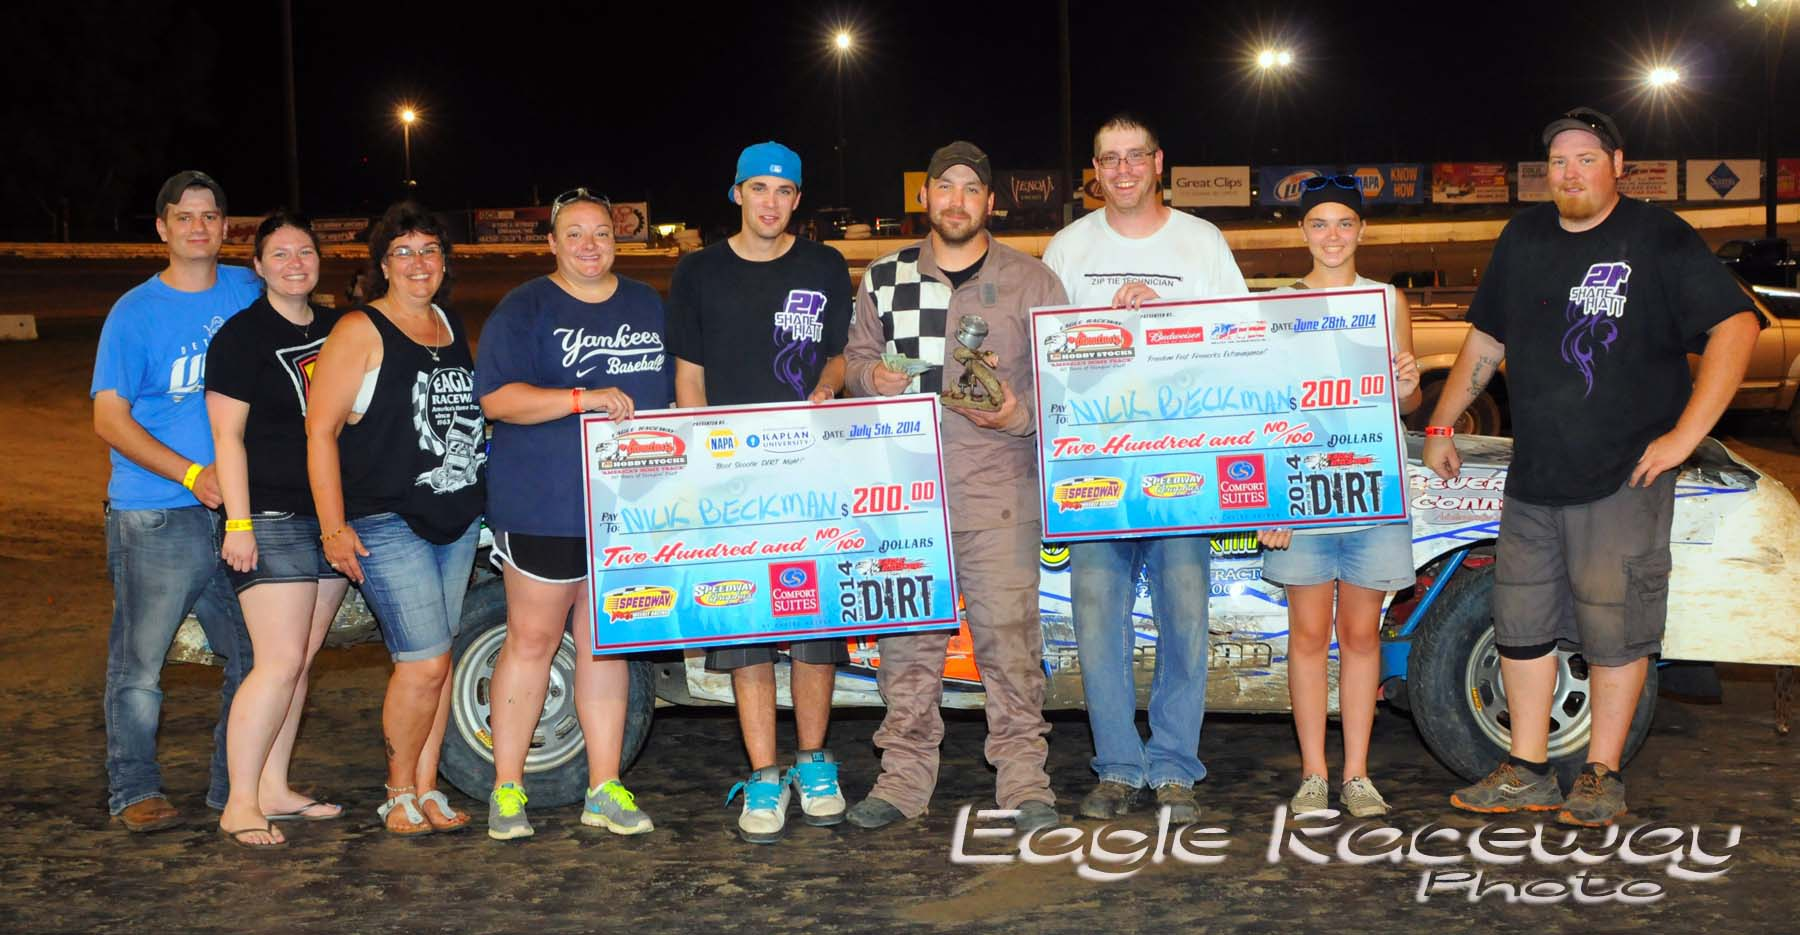 eagle-07-05-14-596-nick-beckman-with-crew-and-family-joeorthphotos